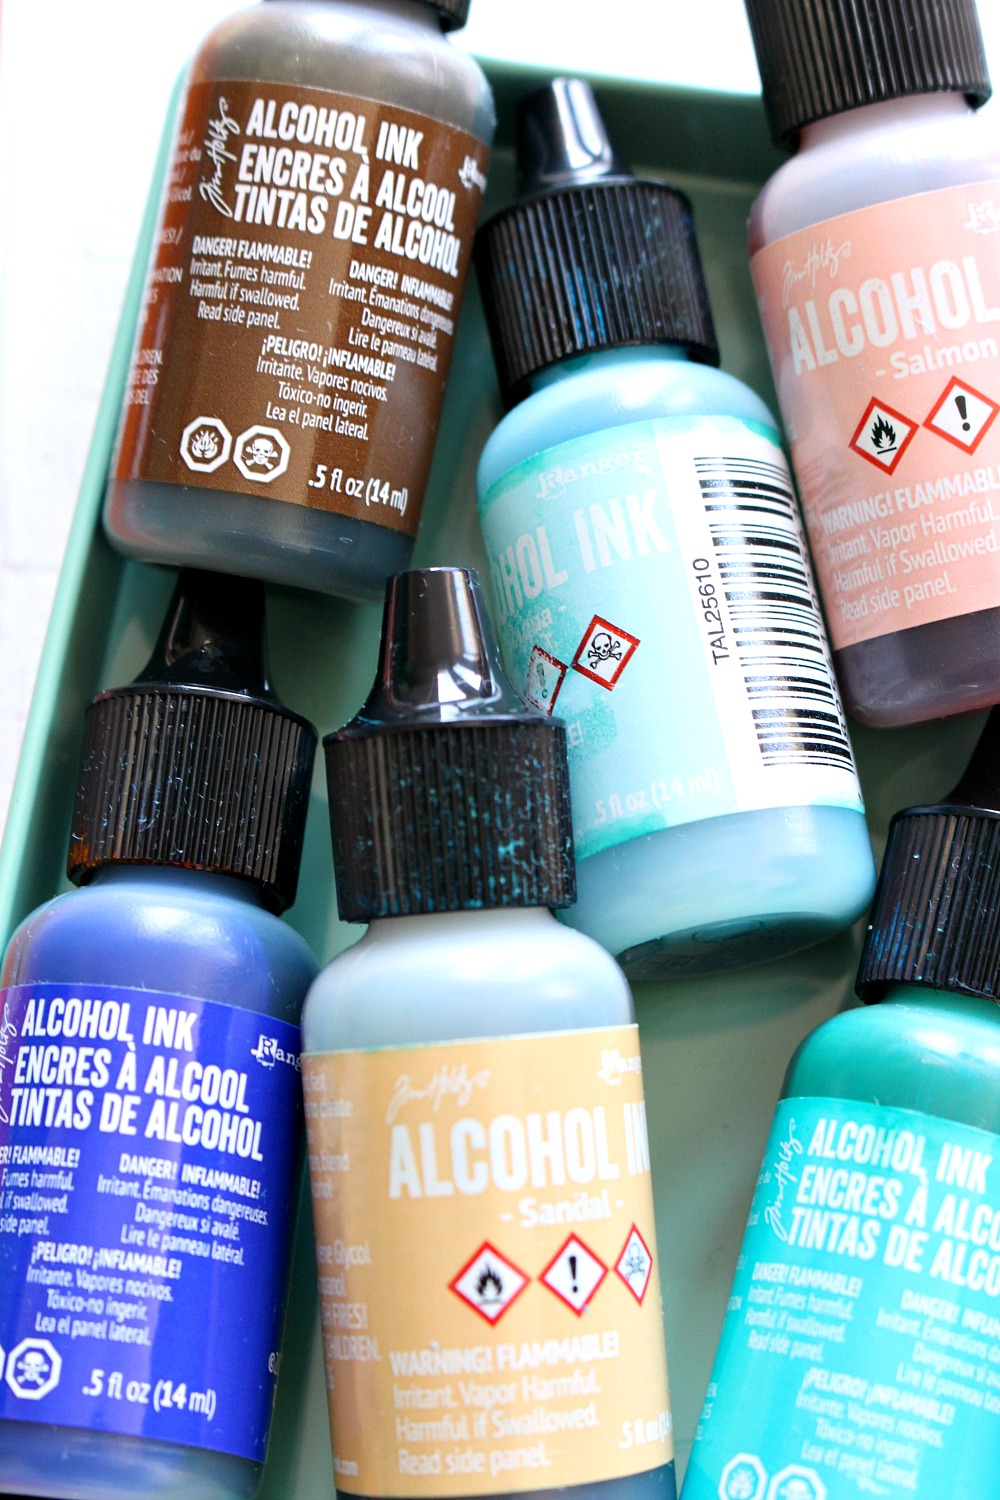 Where to Buy Alcohol Ink